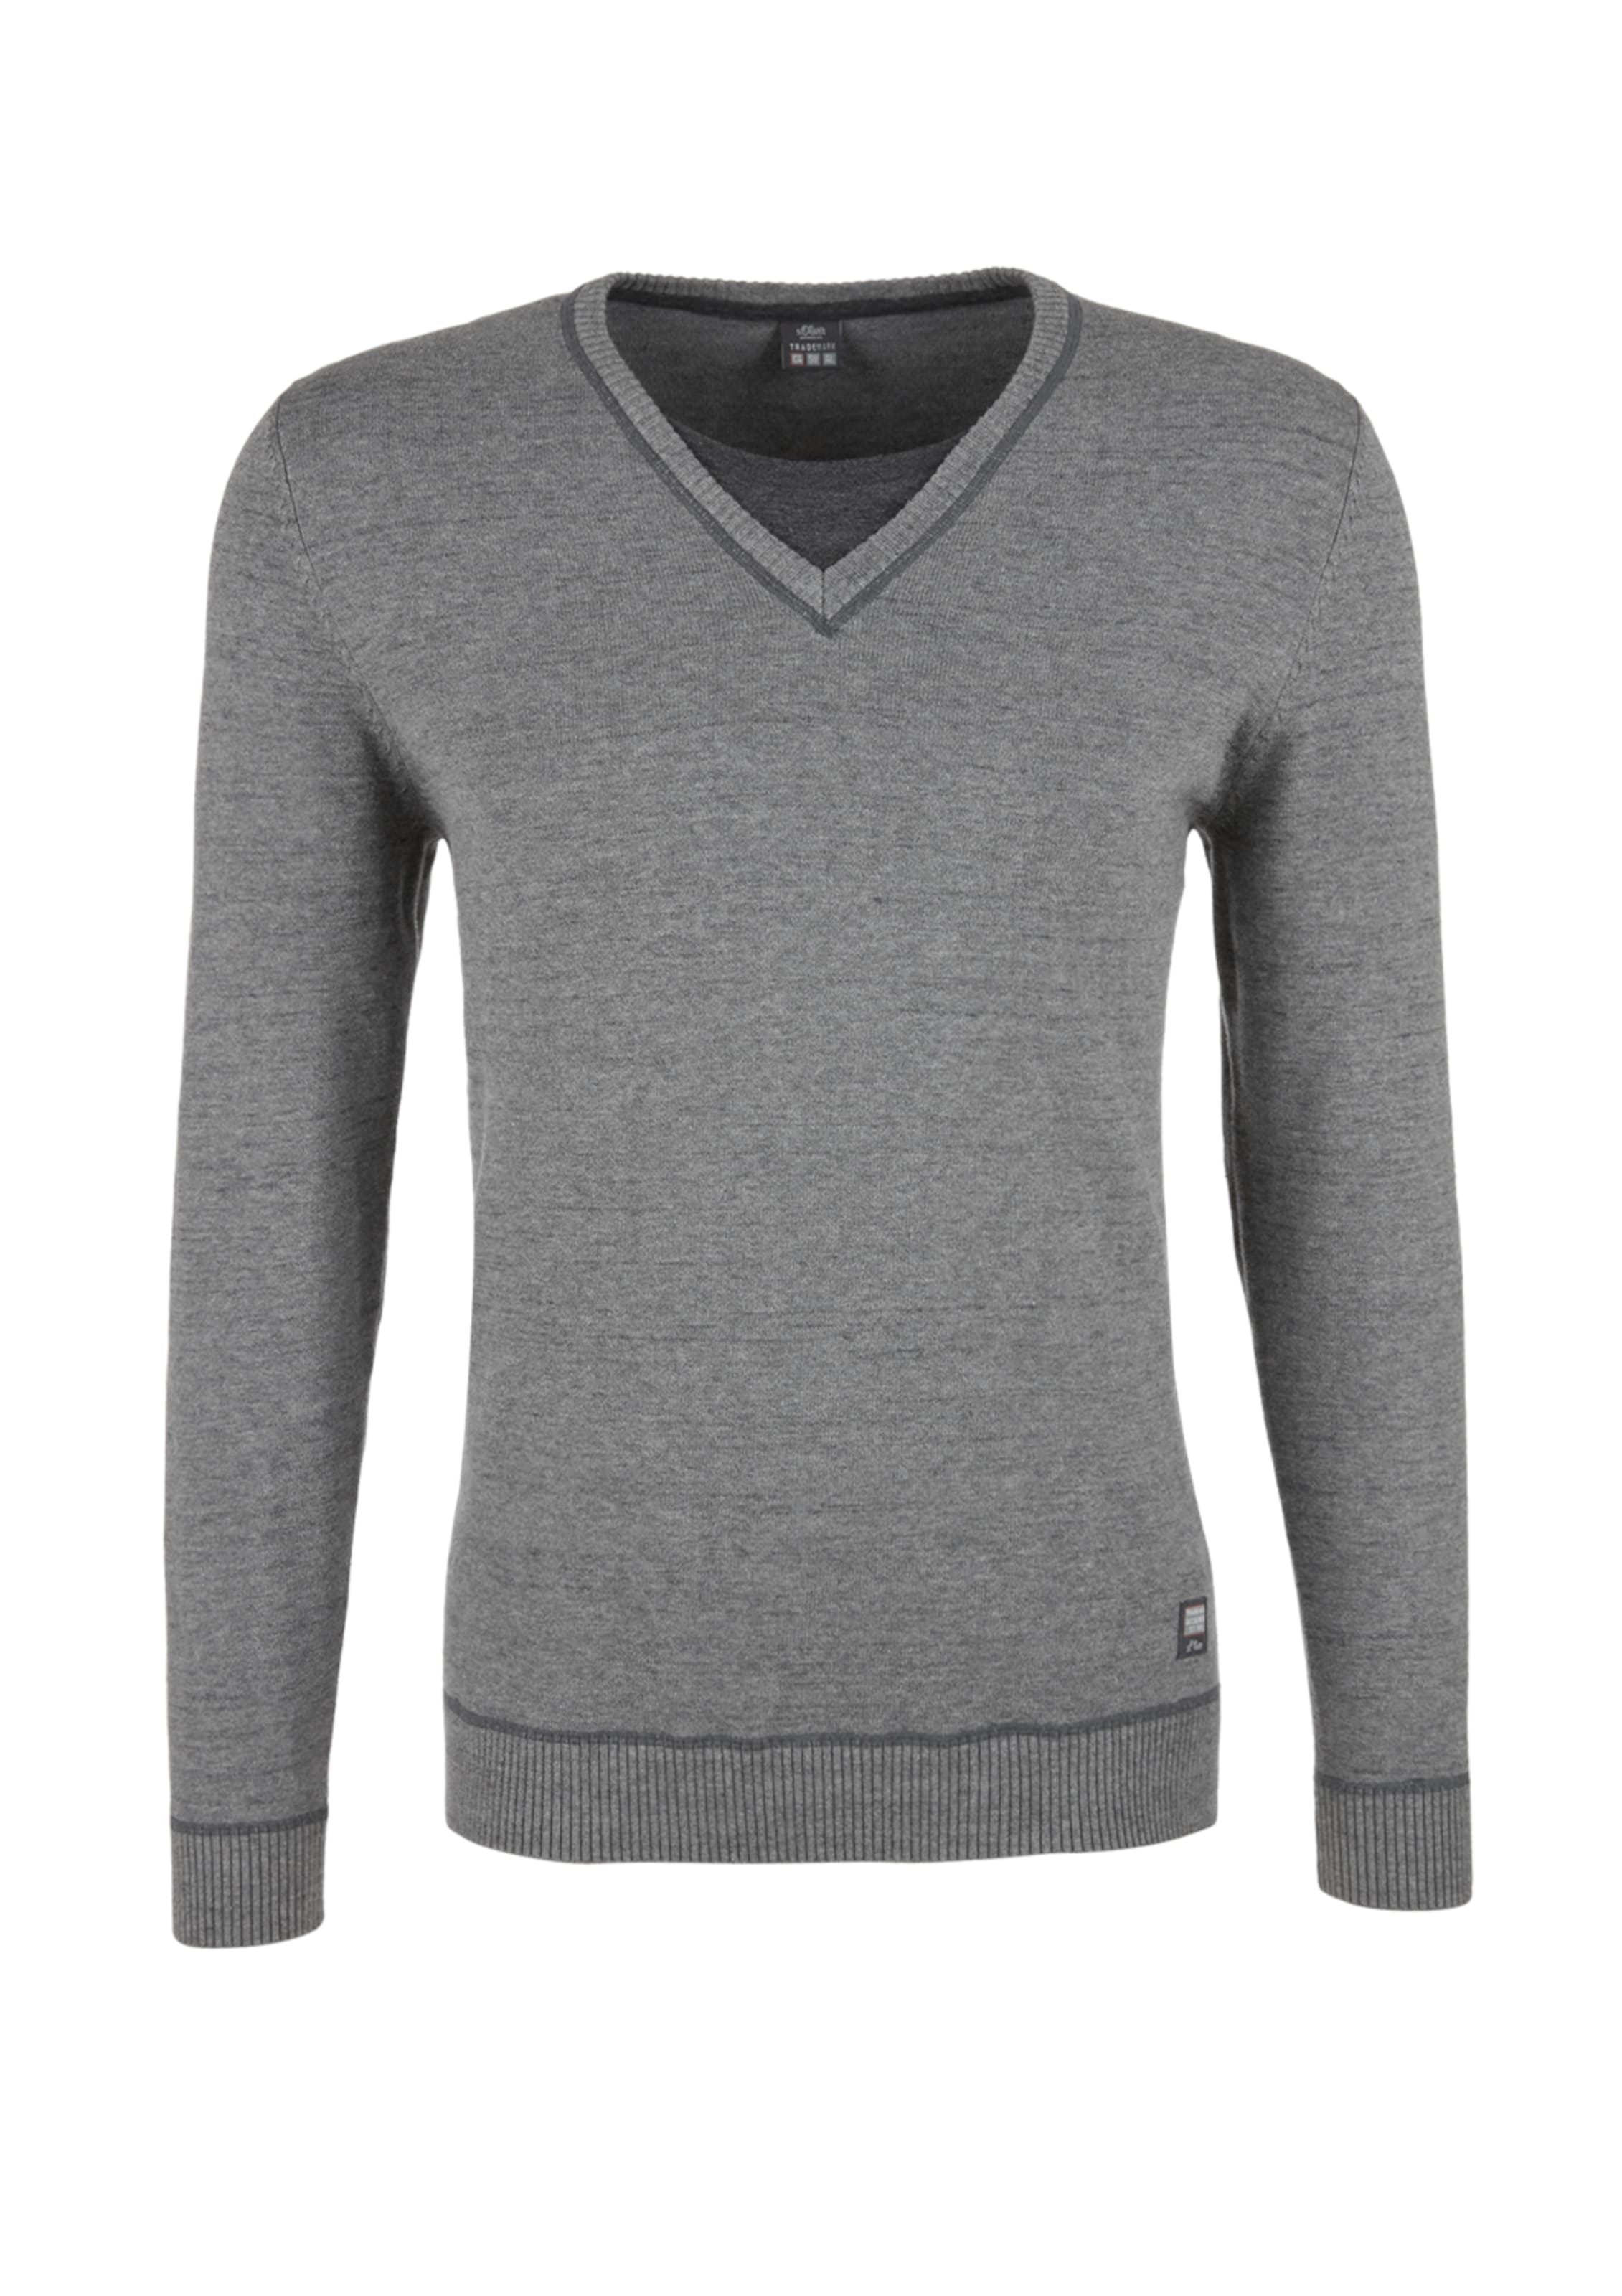 oliver DunkelgrauGraumeliert S Pullover oliver S In y0OvNwPm8n